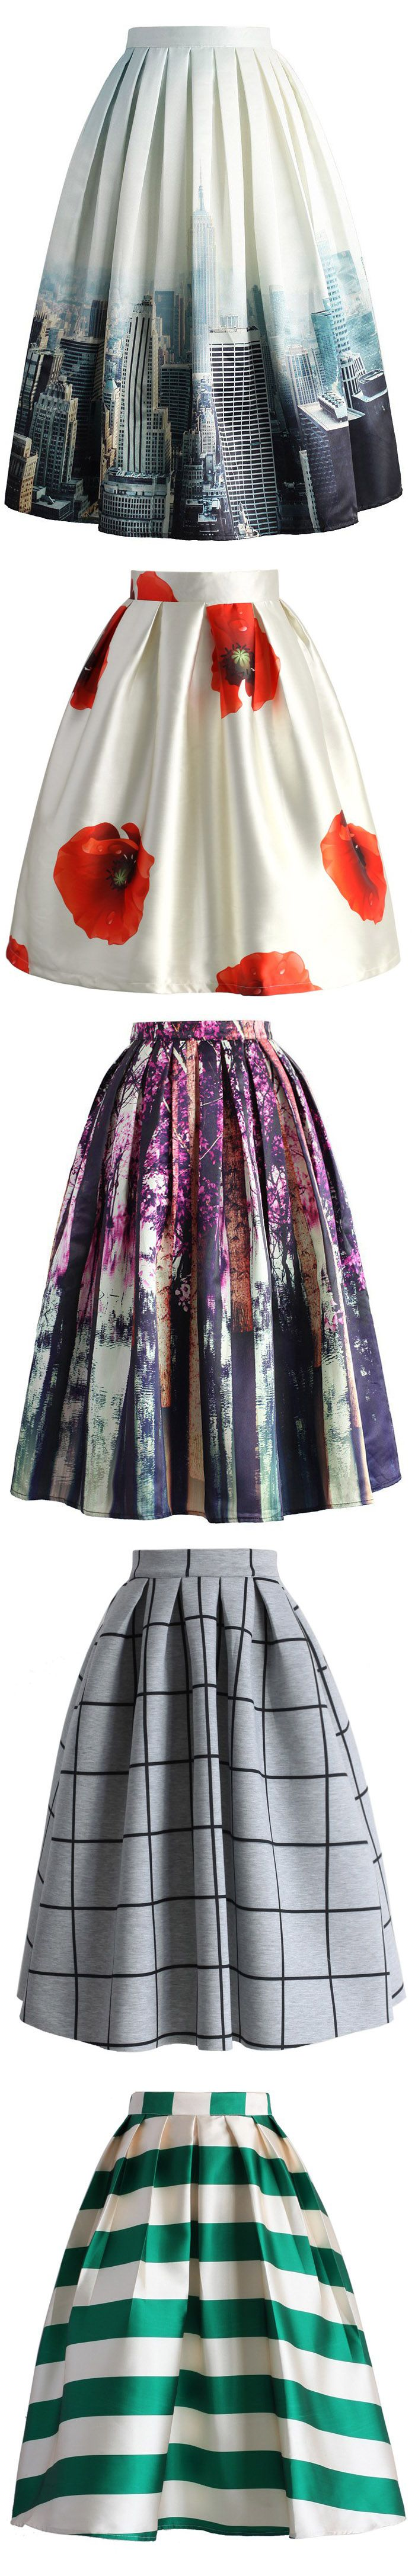 stylist: i have a slight obsession with midi skirts and would love to drown my closet in them :)